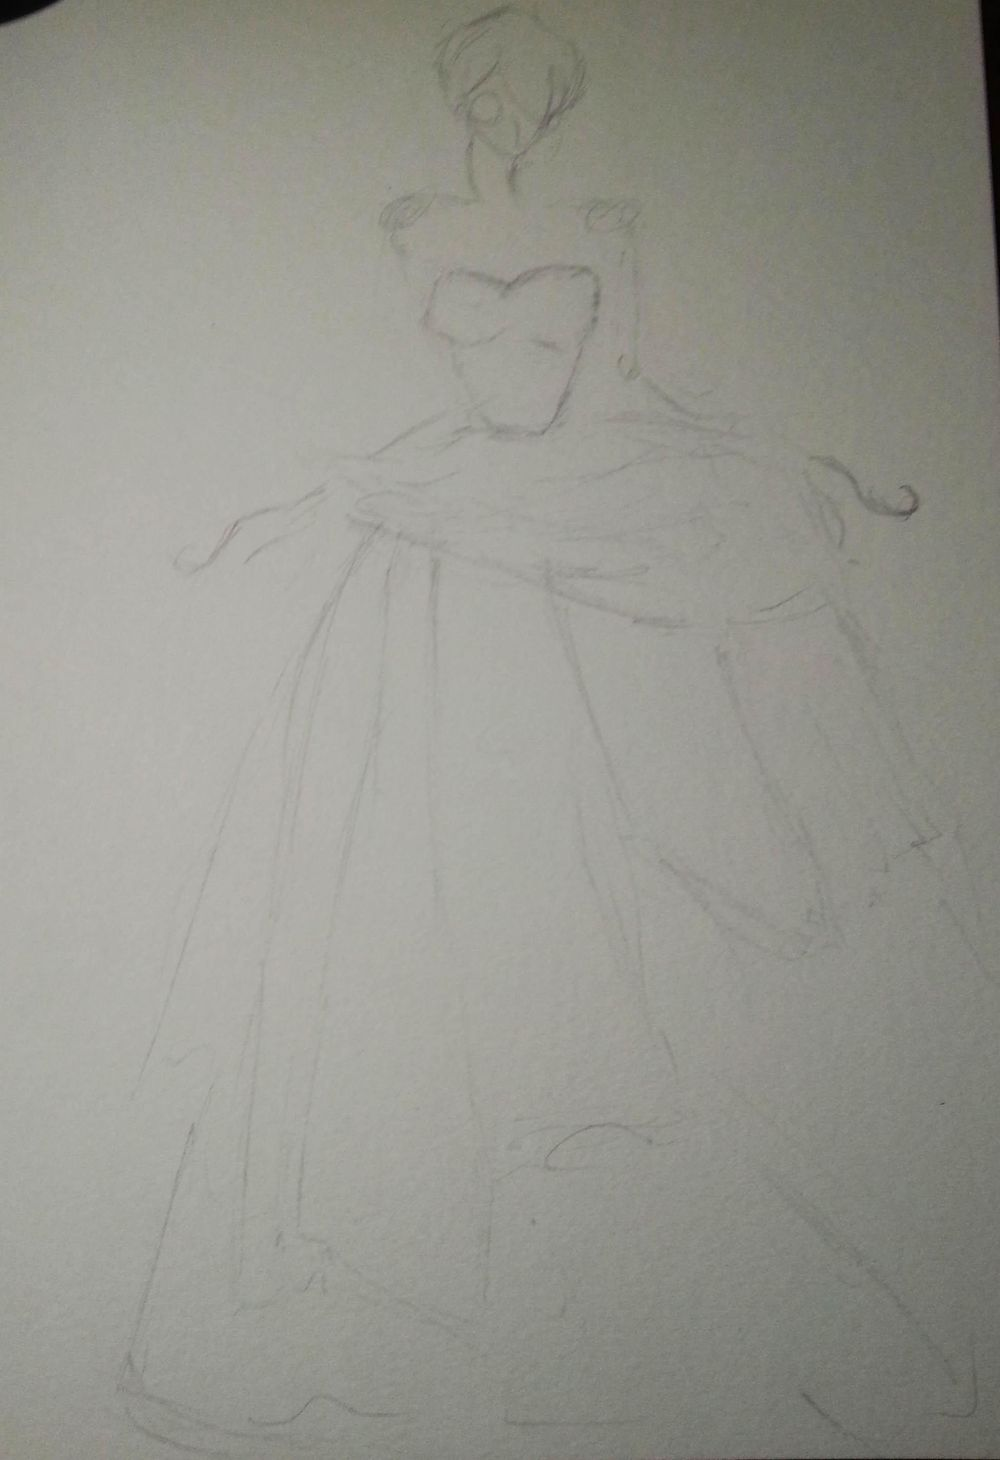 In Couture - image 12 - student project